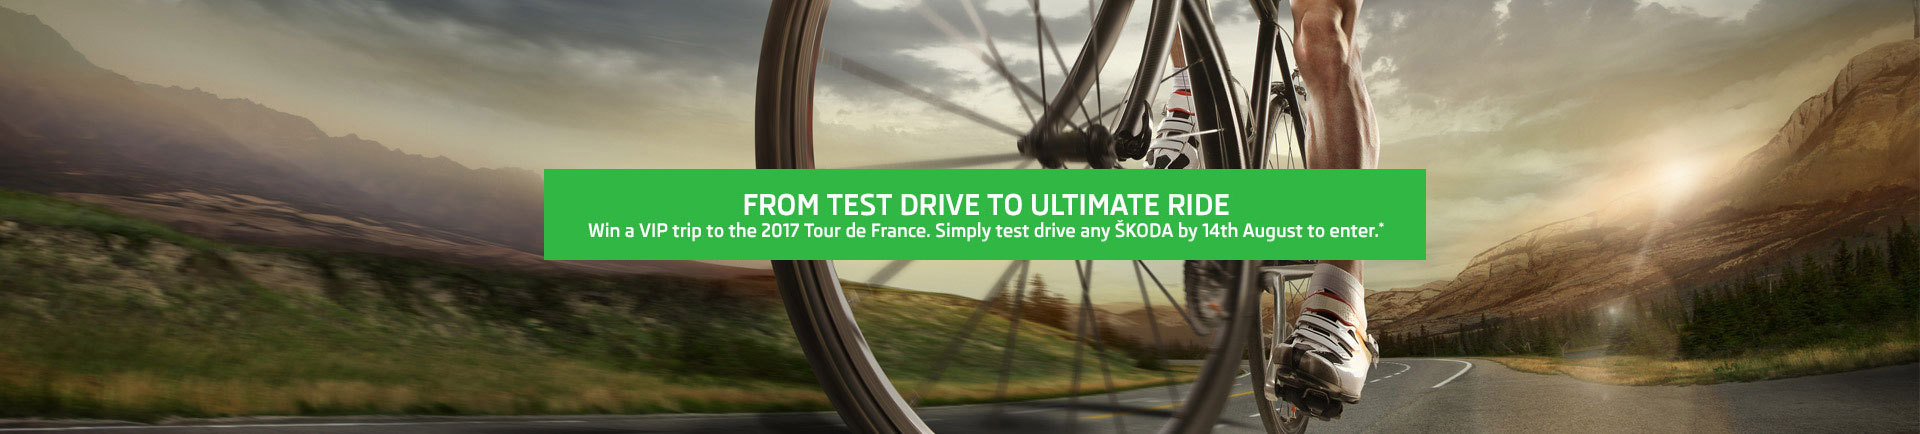 Test drive any Skoda for the chance to win a VIP trip to Tour de France 2017